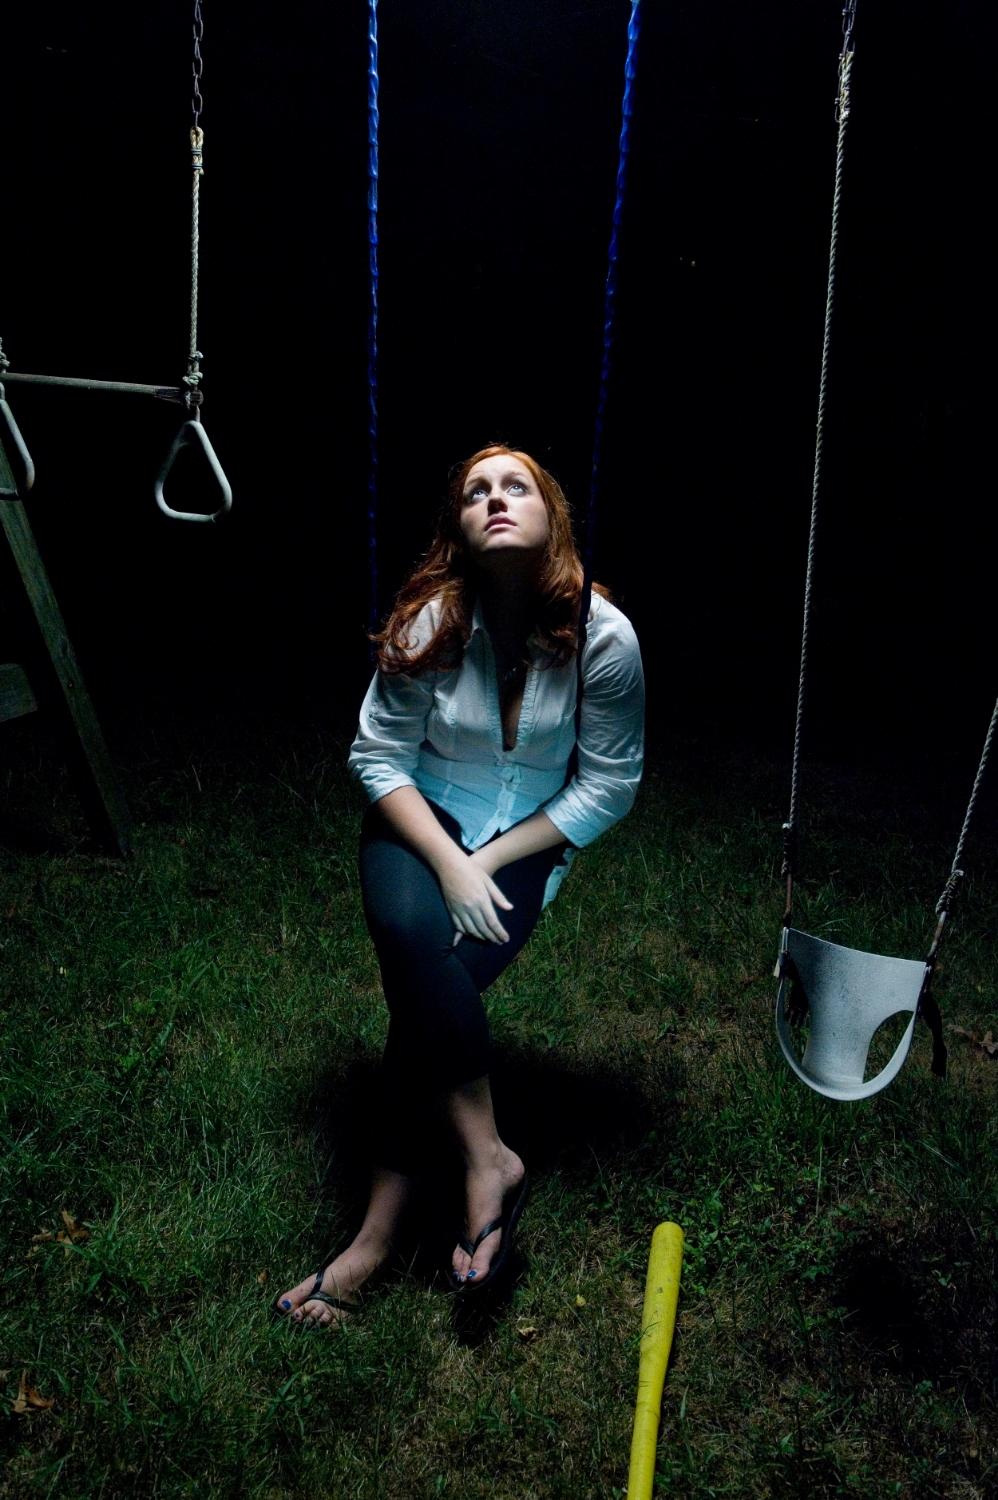 long-island-portrait-photographer-digital-night-swings-flash-location-outdoor.jpg